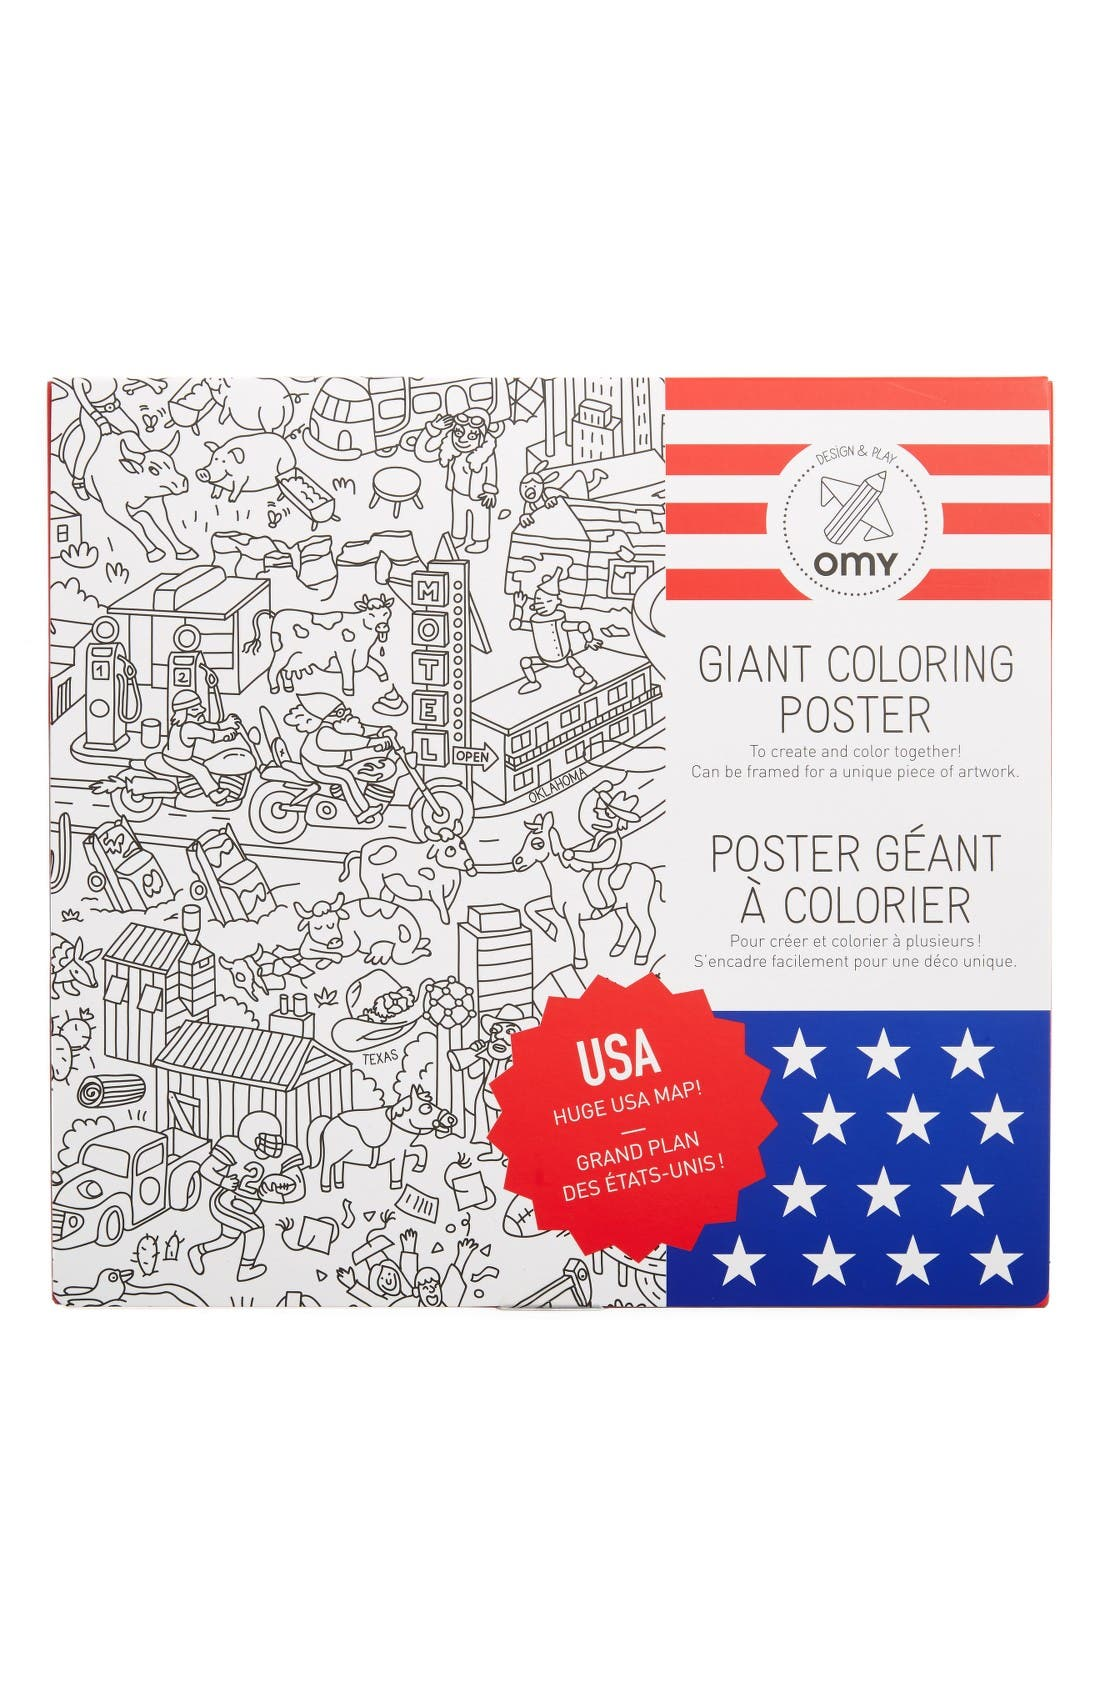 Alternate Image 1 Selected - OMY USA Giant Coloring Poster